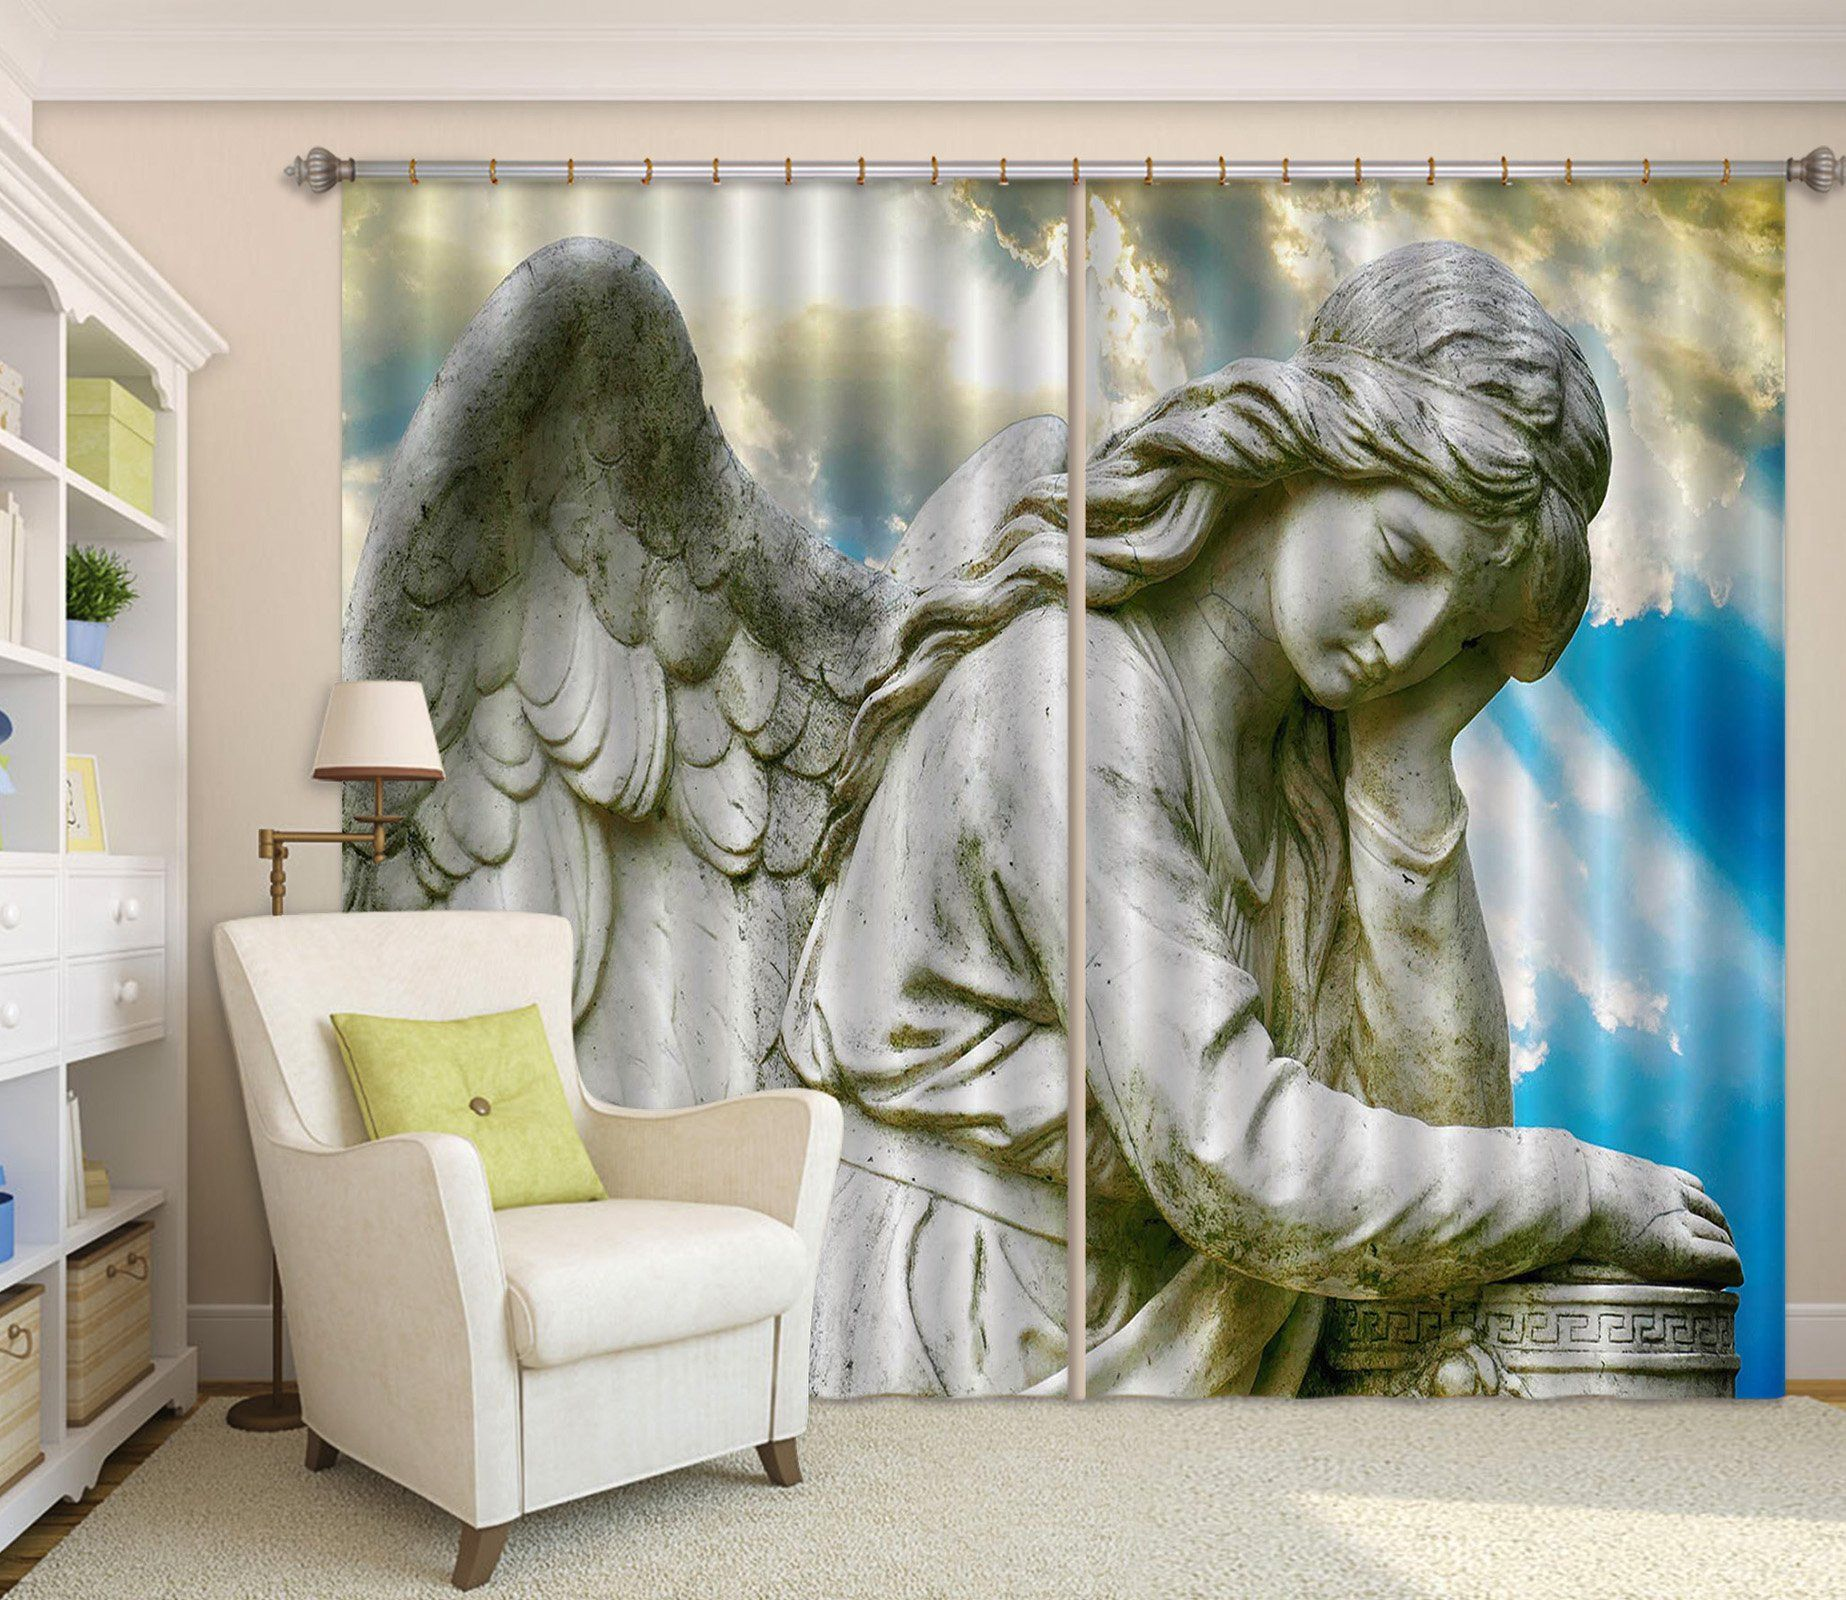 3D Angel Meditation 063 Curtains Drapes Curtains AJ Creativity Home